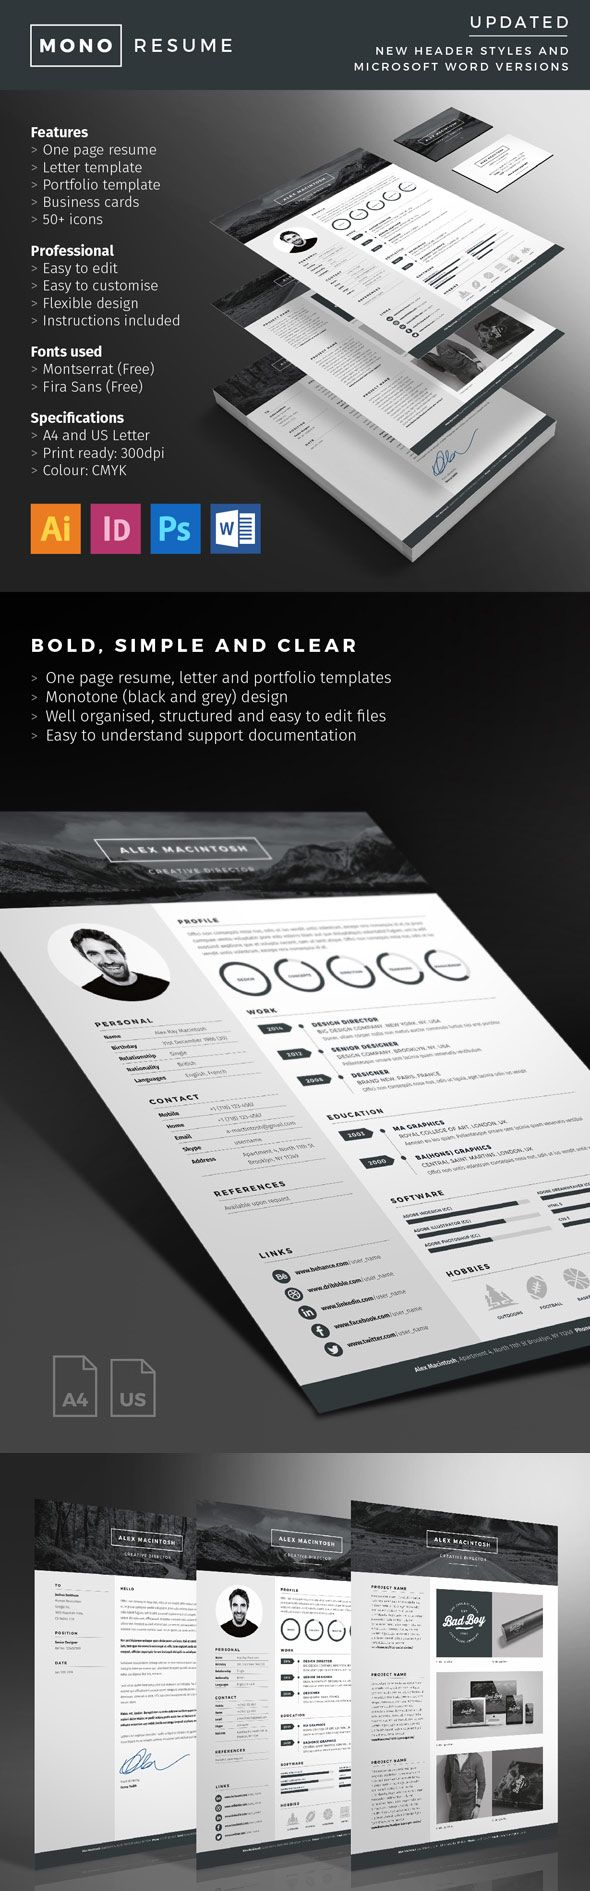 Mono Resume With Minimal Design 12 best